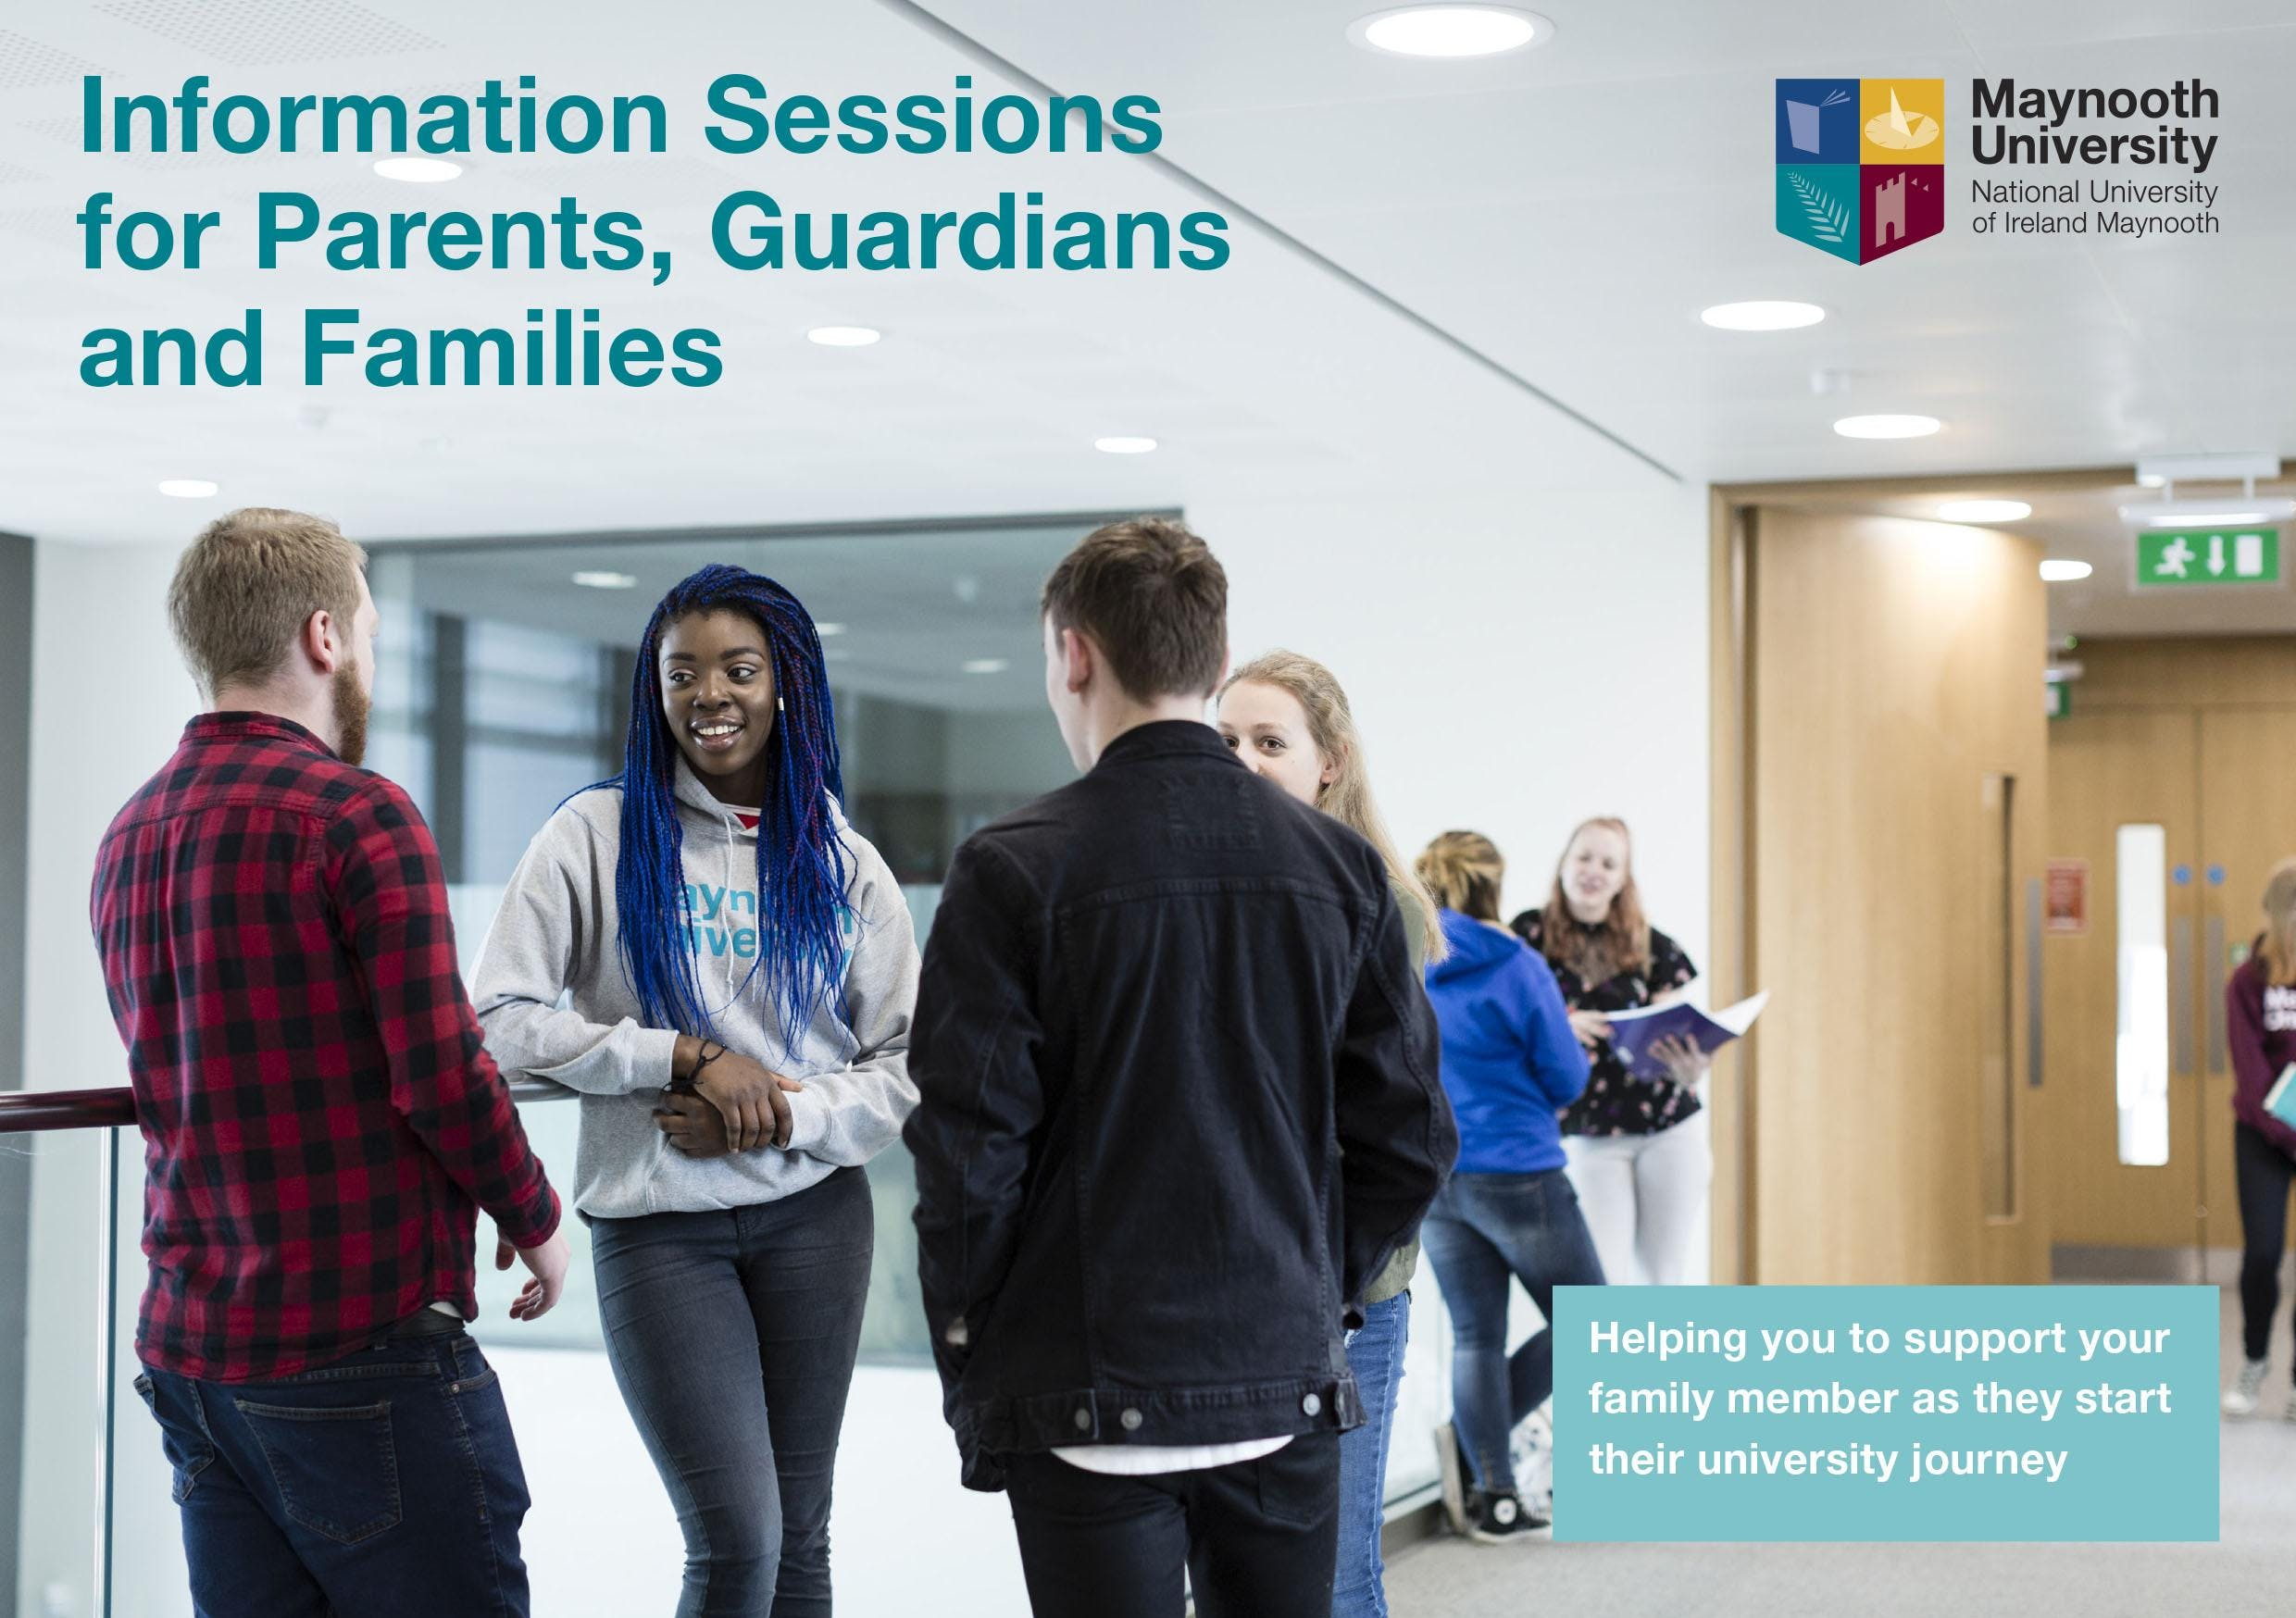 MU Parent / Family Orientation Tuesday, 18th September